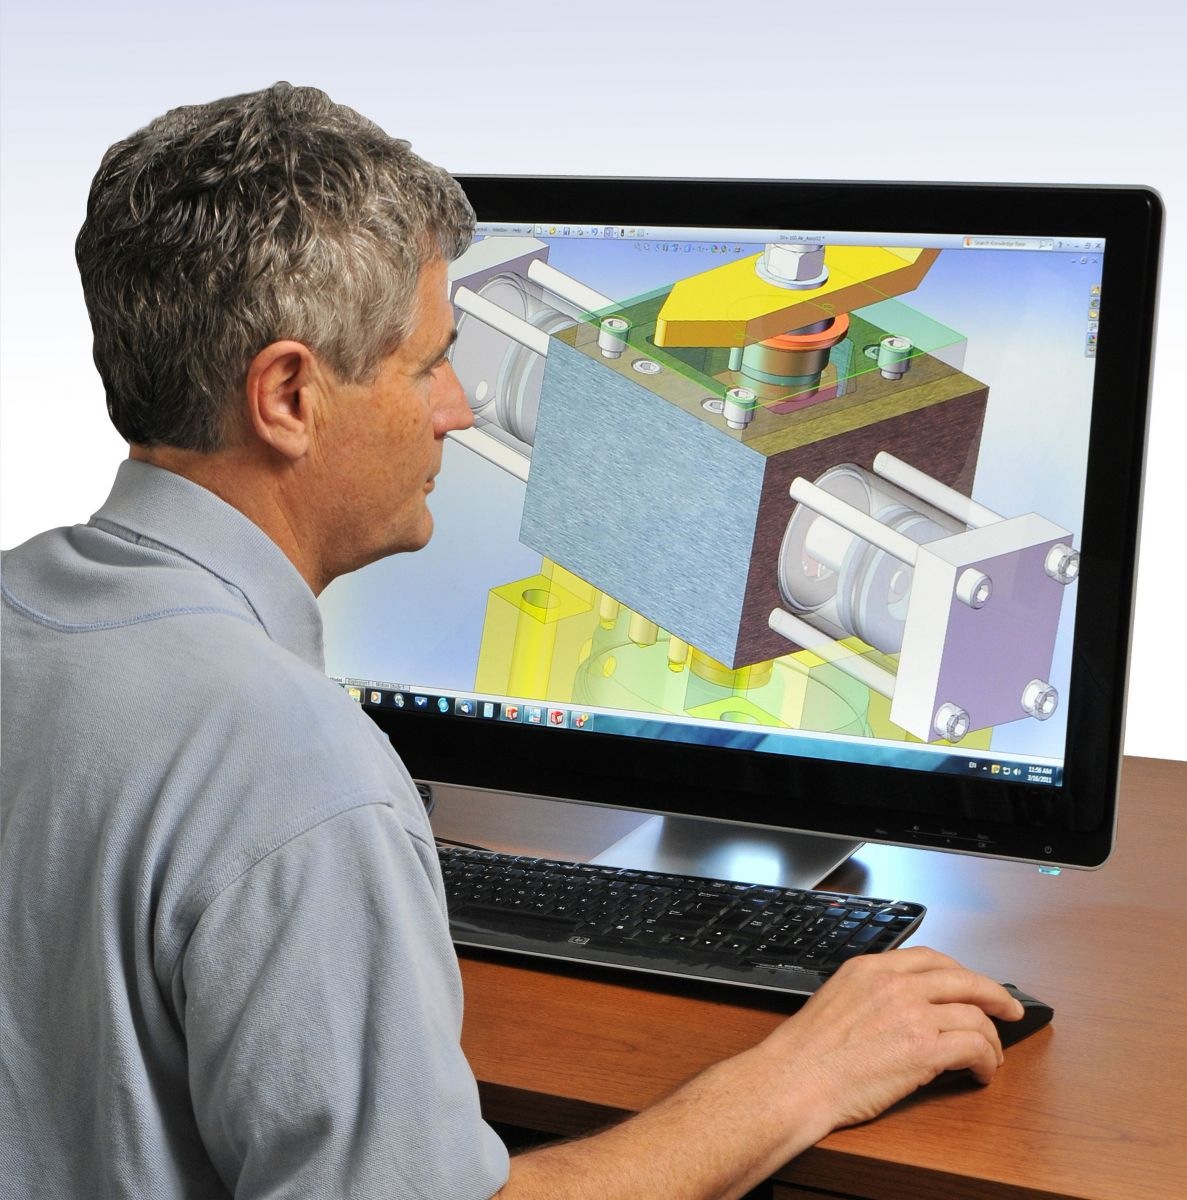 A person using CAD